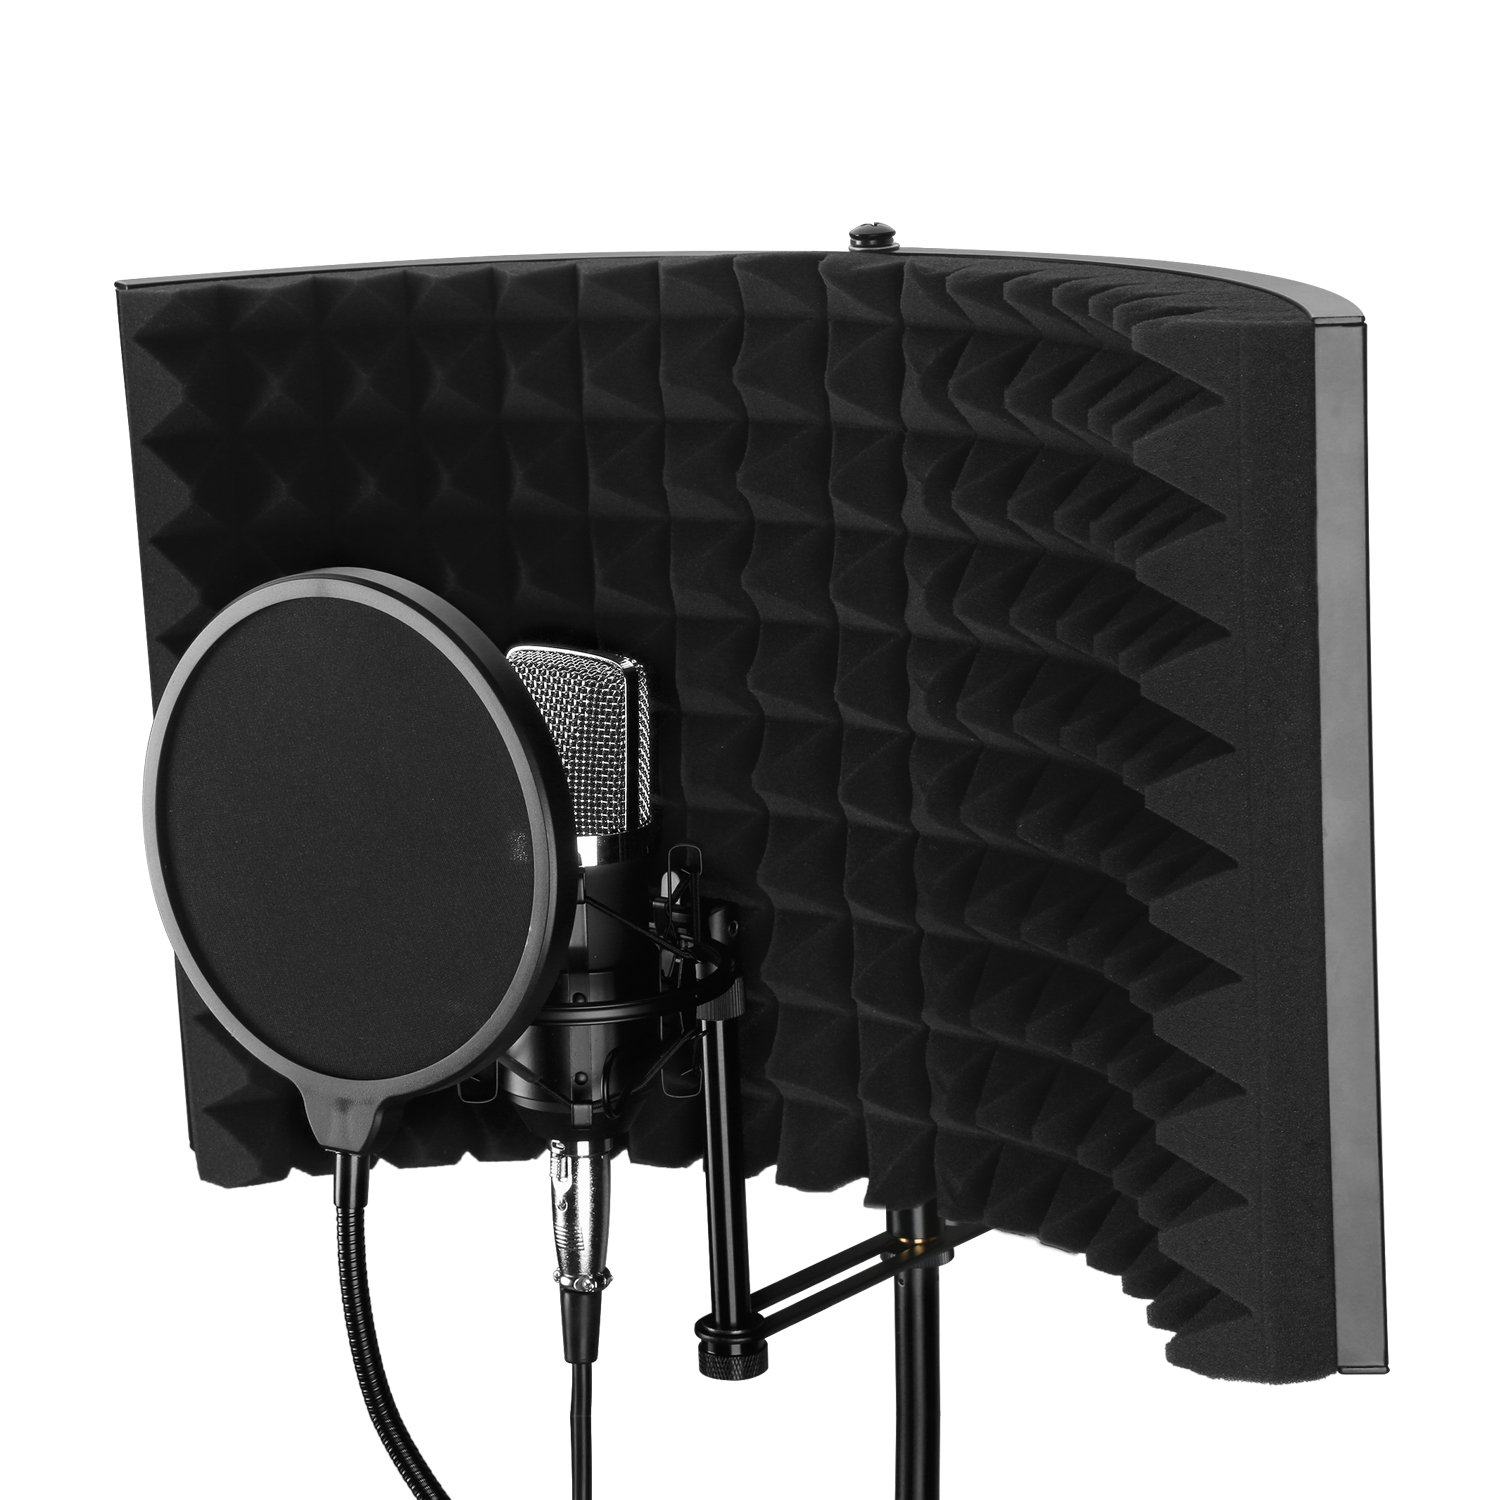 Aokeo Premium Microphone Isolation Shield, Foldable Adjustable Studio Recording Microphone Isolator Panel, Constructed with Industrial Quality Aluminum, High-Density Absorbing Foam Cotton (AO-302)